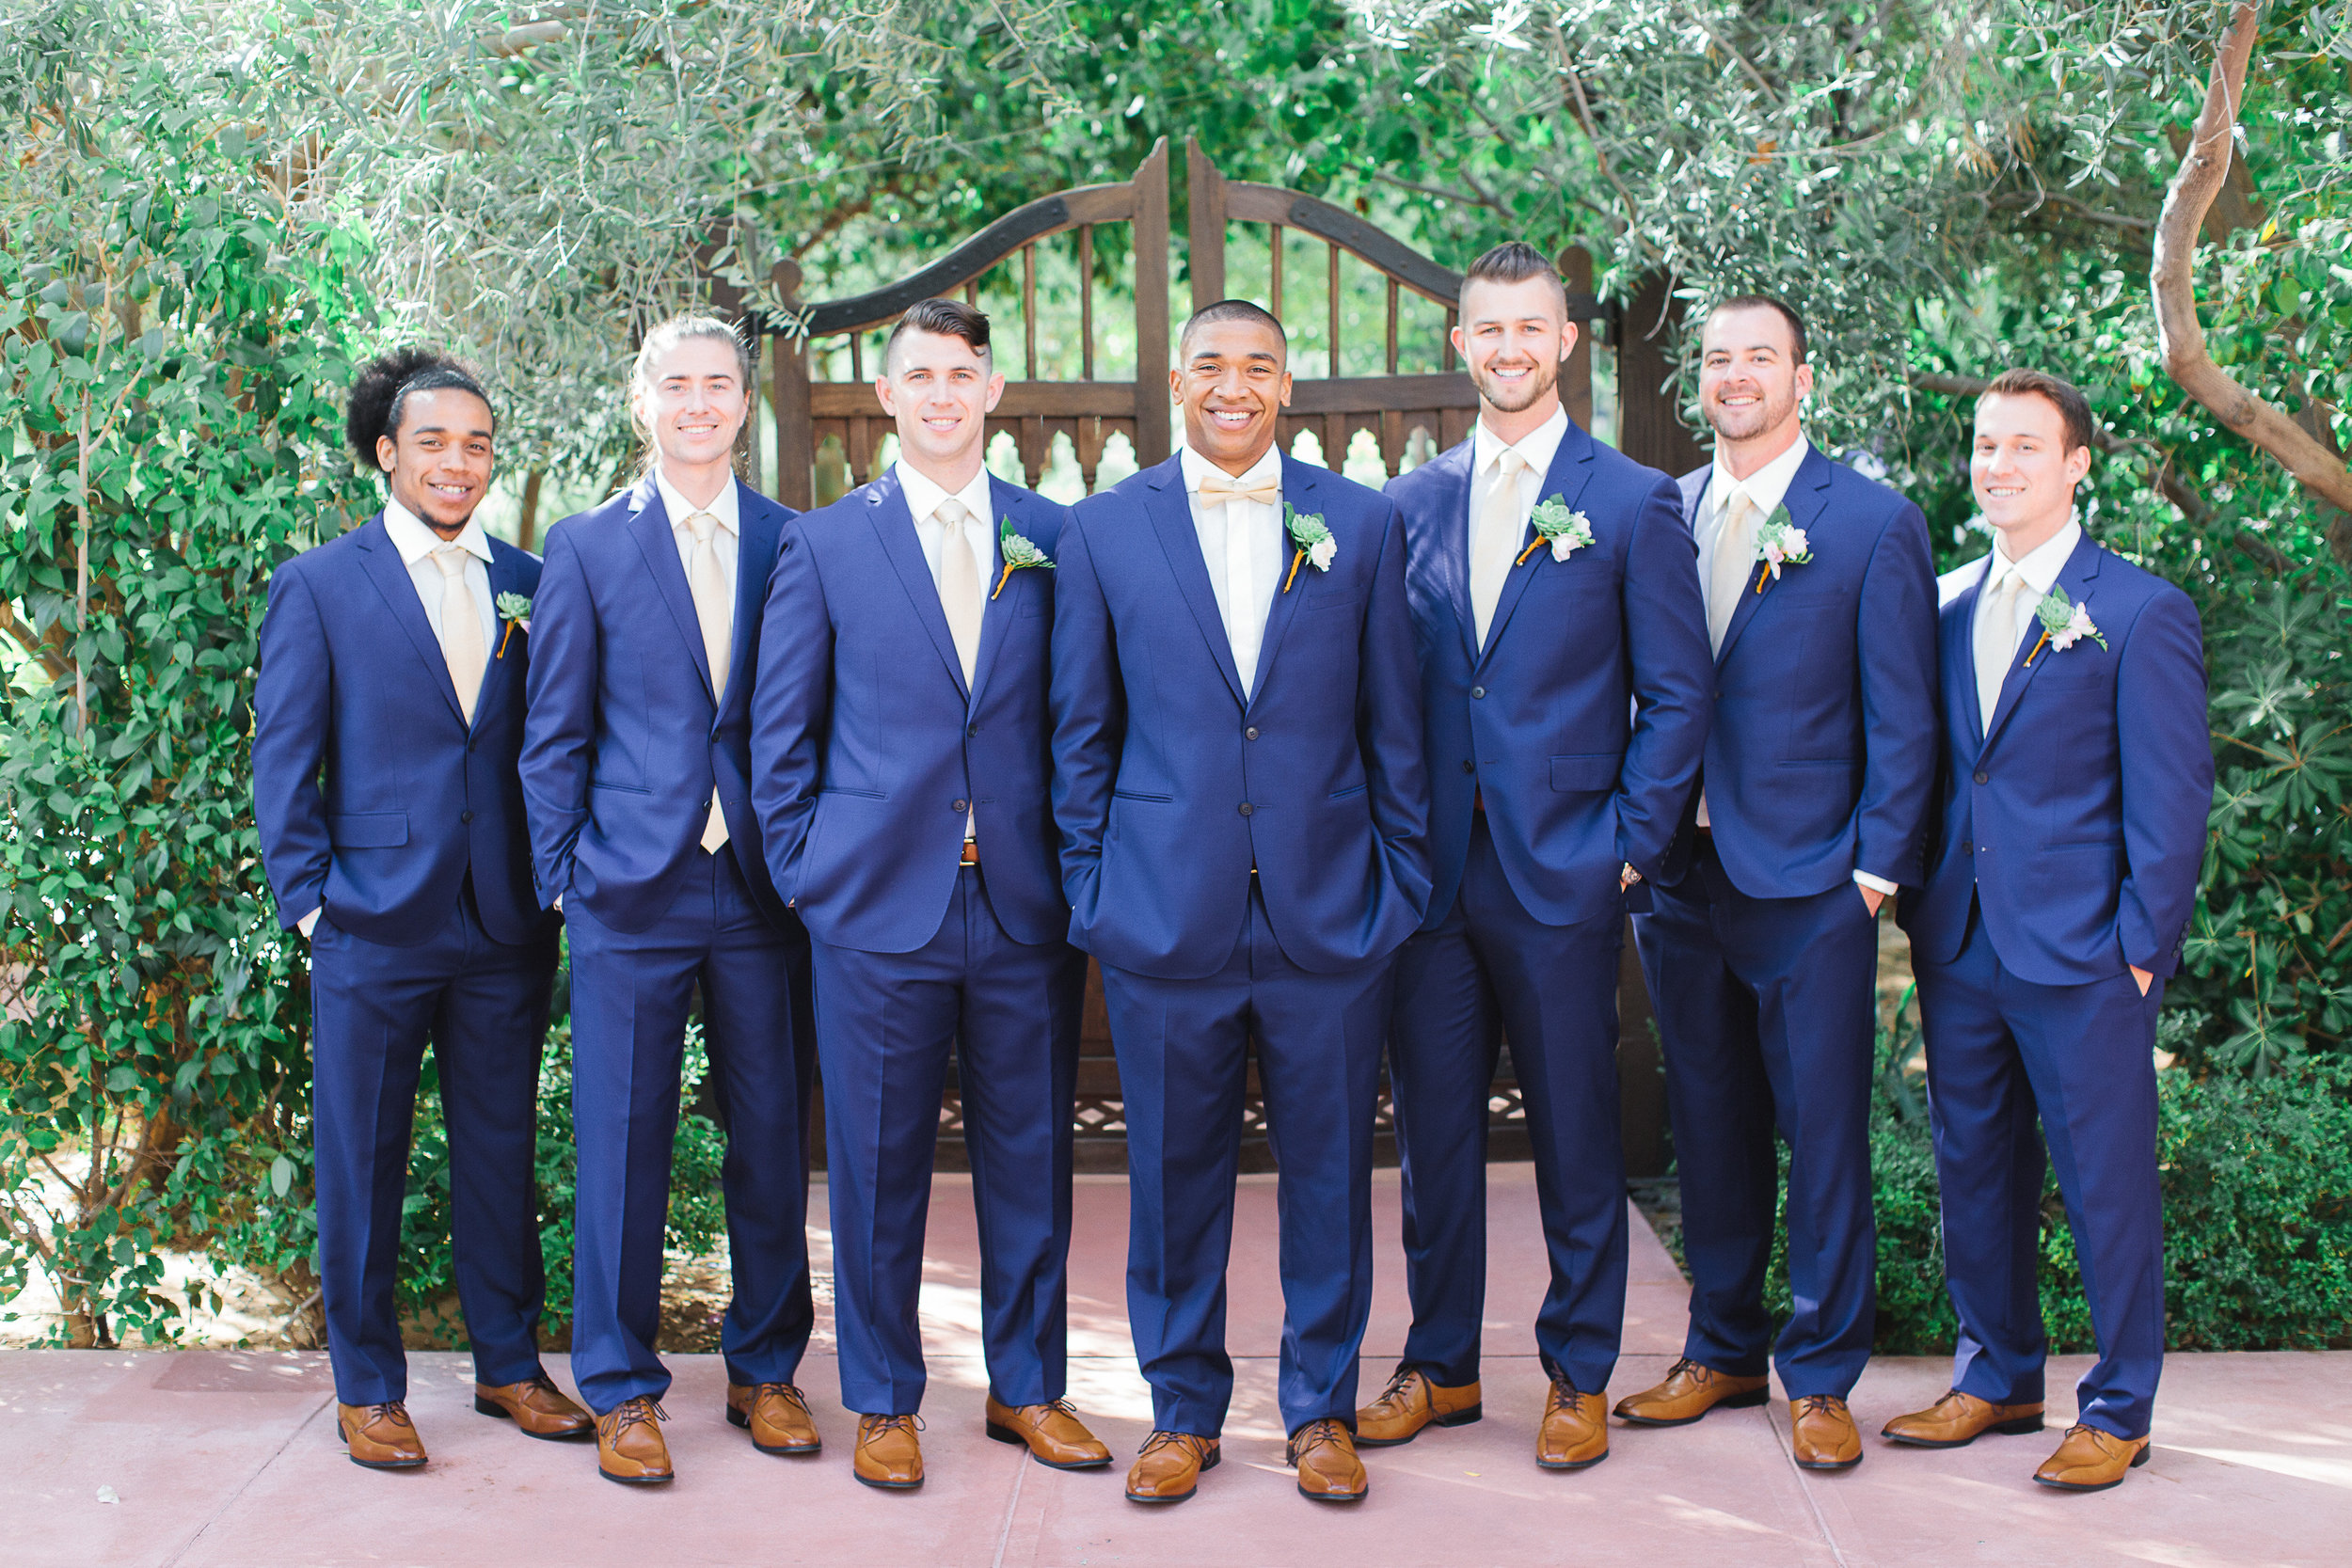 groom groomsmen blue suit groom wedding party brown shoes with blue suits el chorro wedding paradise valley arizona Grey Key Events photos by Andrew Jade Photography.jpg